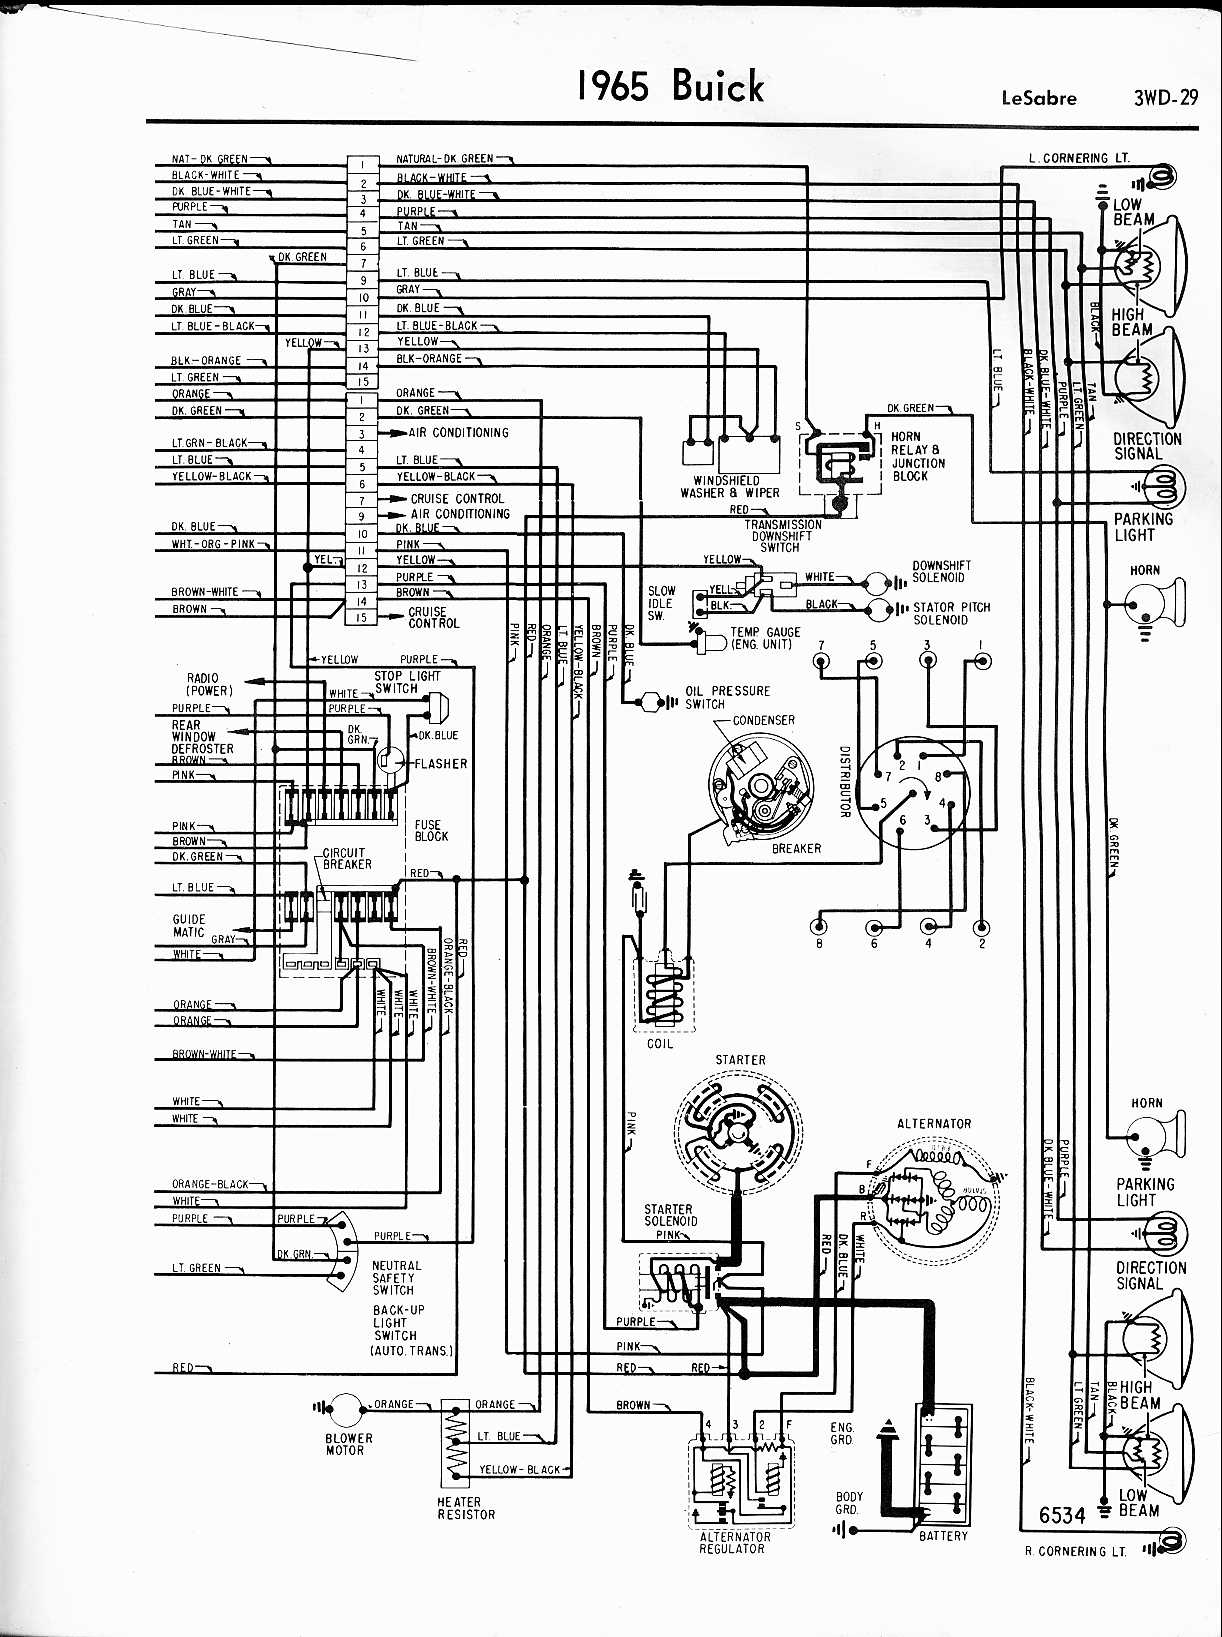 Buick Wiring Diagrams 1957 1965 72 Chevy C10 Starter Diagram For An Lesabre Right Half